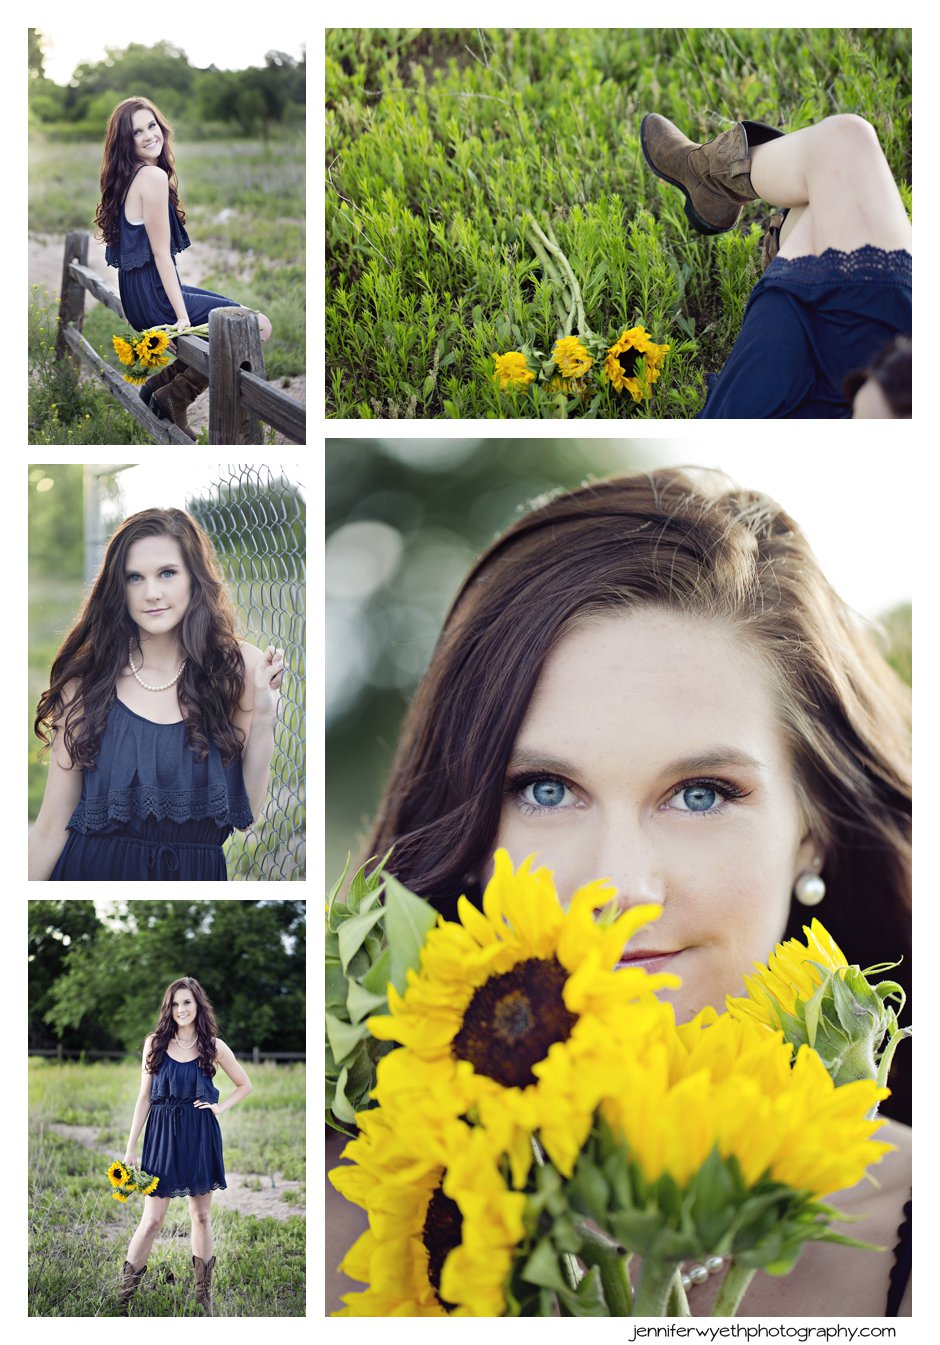 using sunflowers as a prop a beautiful girl smiles in a blue dress